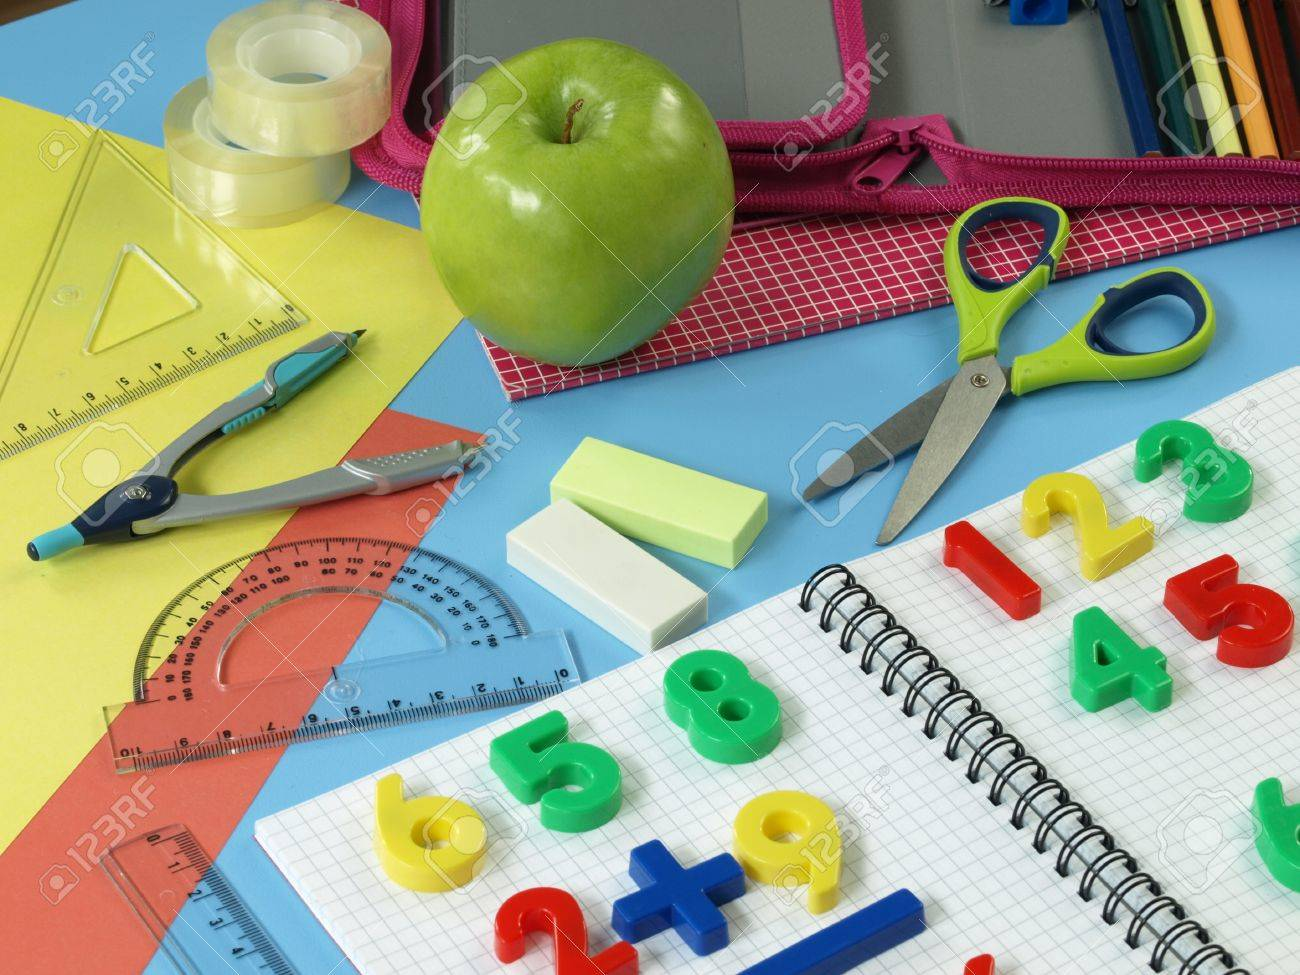 Worksheet Firstmath first math tasks colorful children work place stock photo 14600931